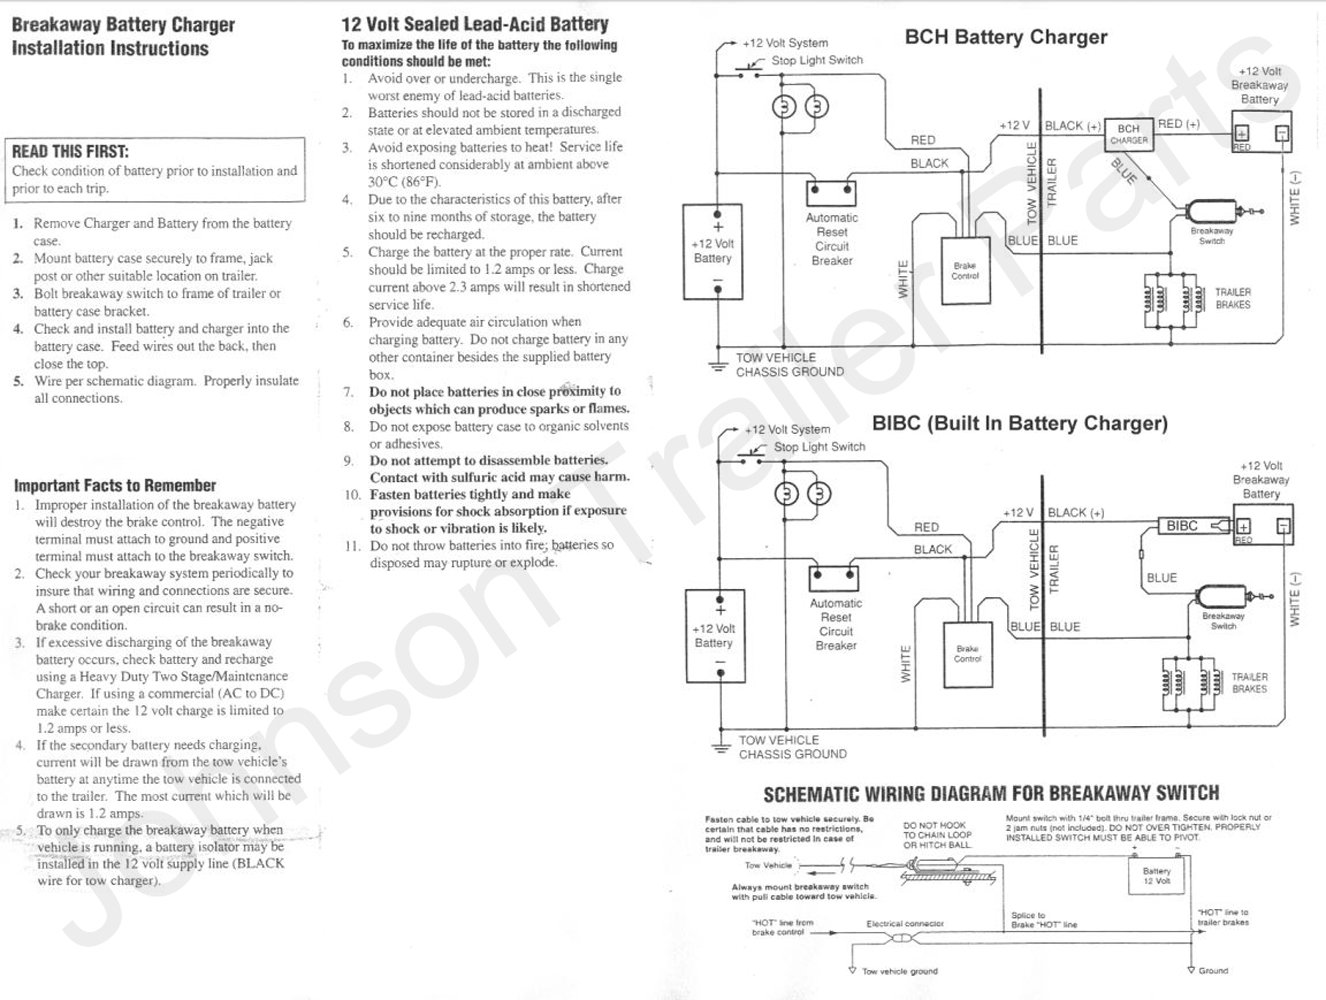 718PvzZr5ZL._SL1326_ amazon com trailer breakaway kit led readout breakaway switch tekonsha breakaway system wiring diagram at gsmx.co